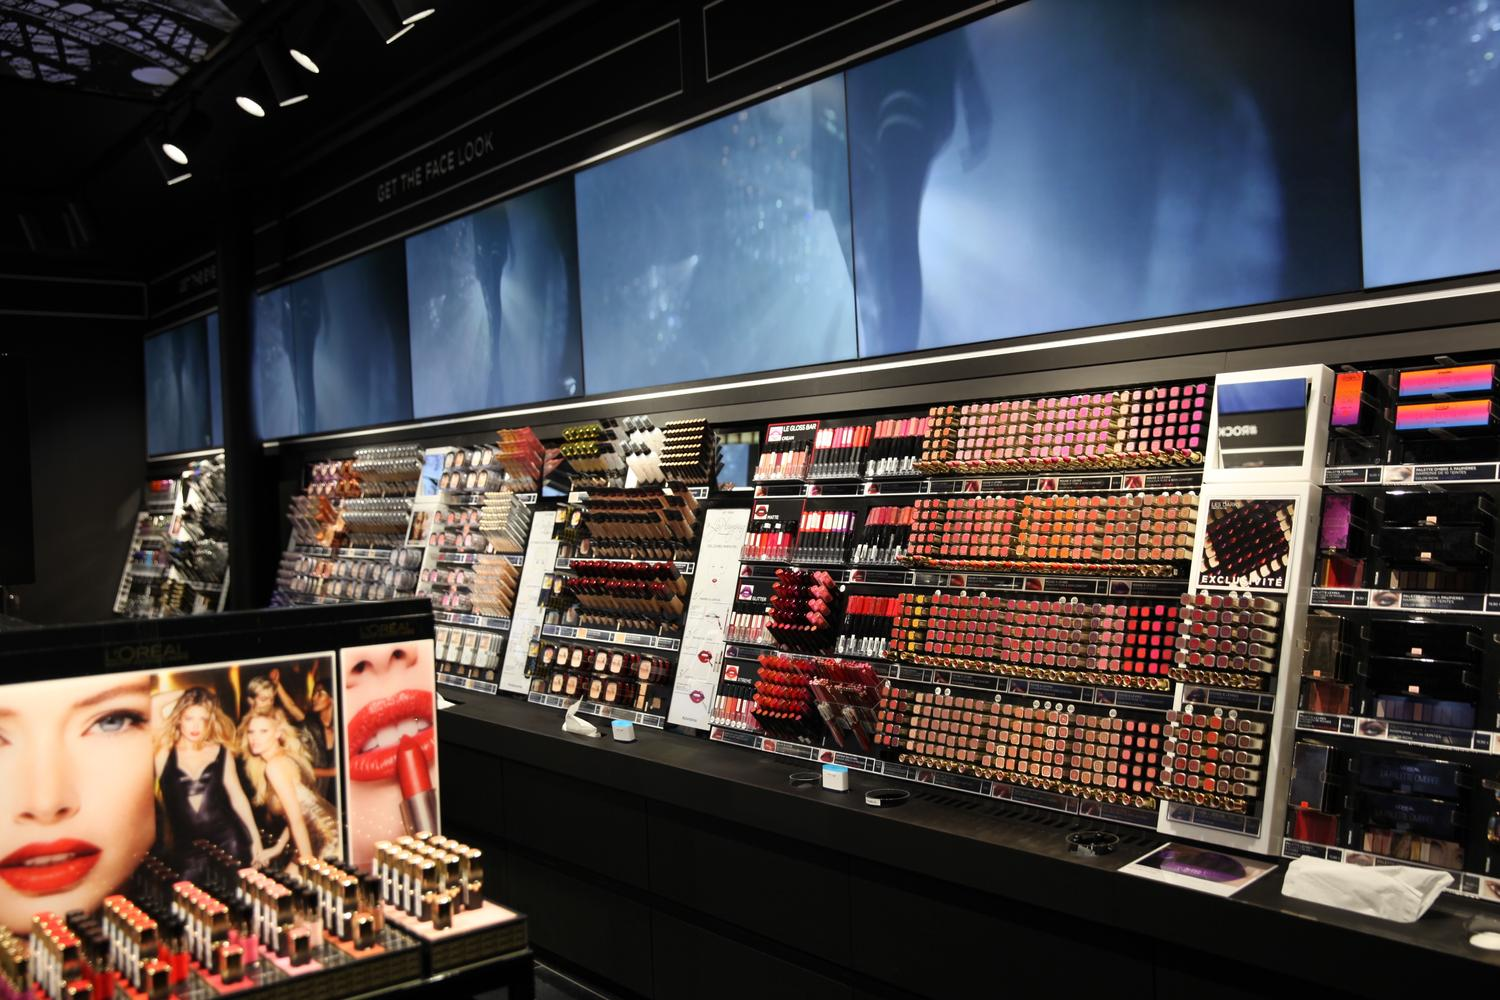 agencement boutique l'oréal paris